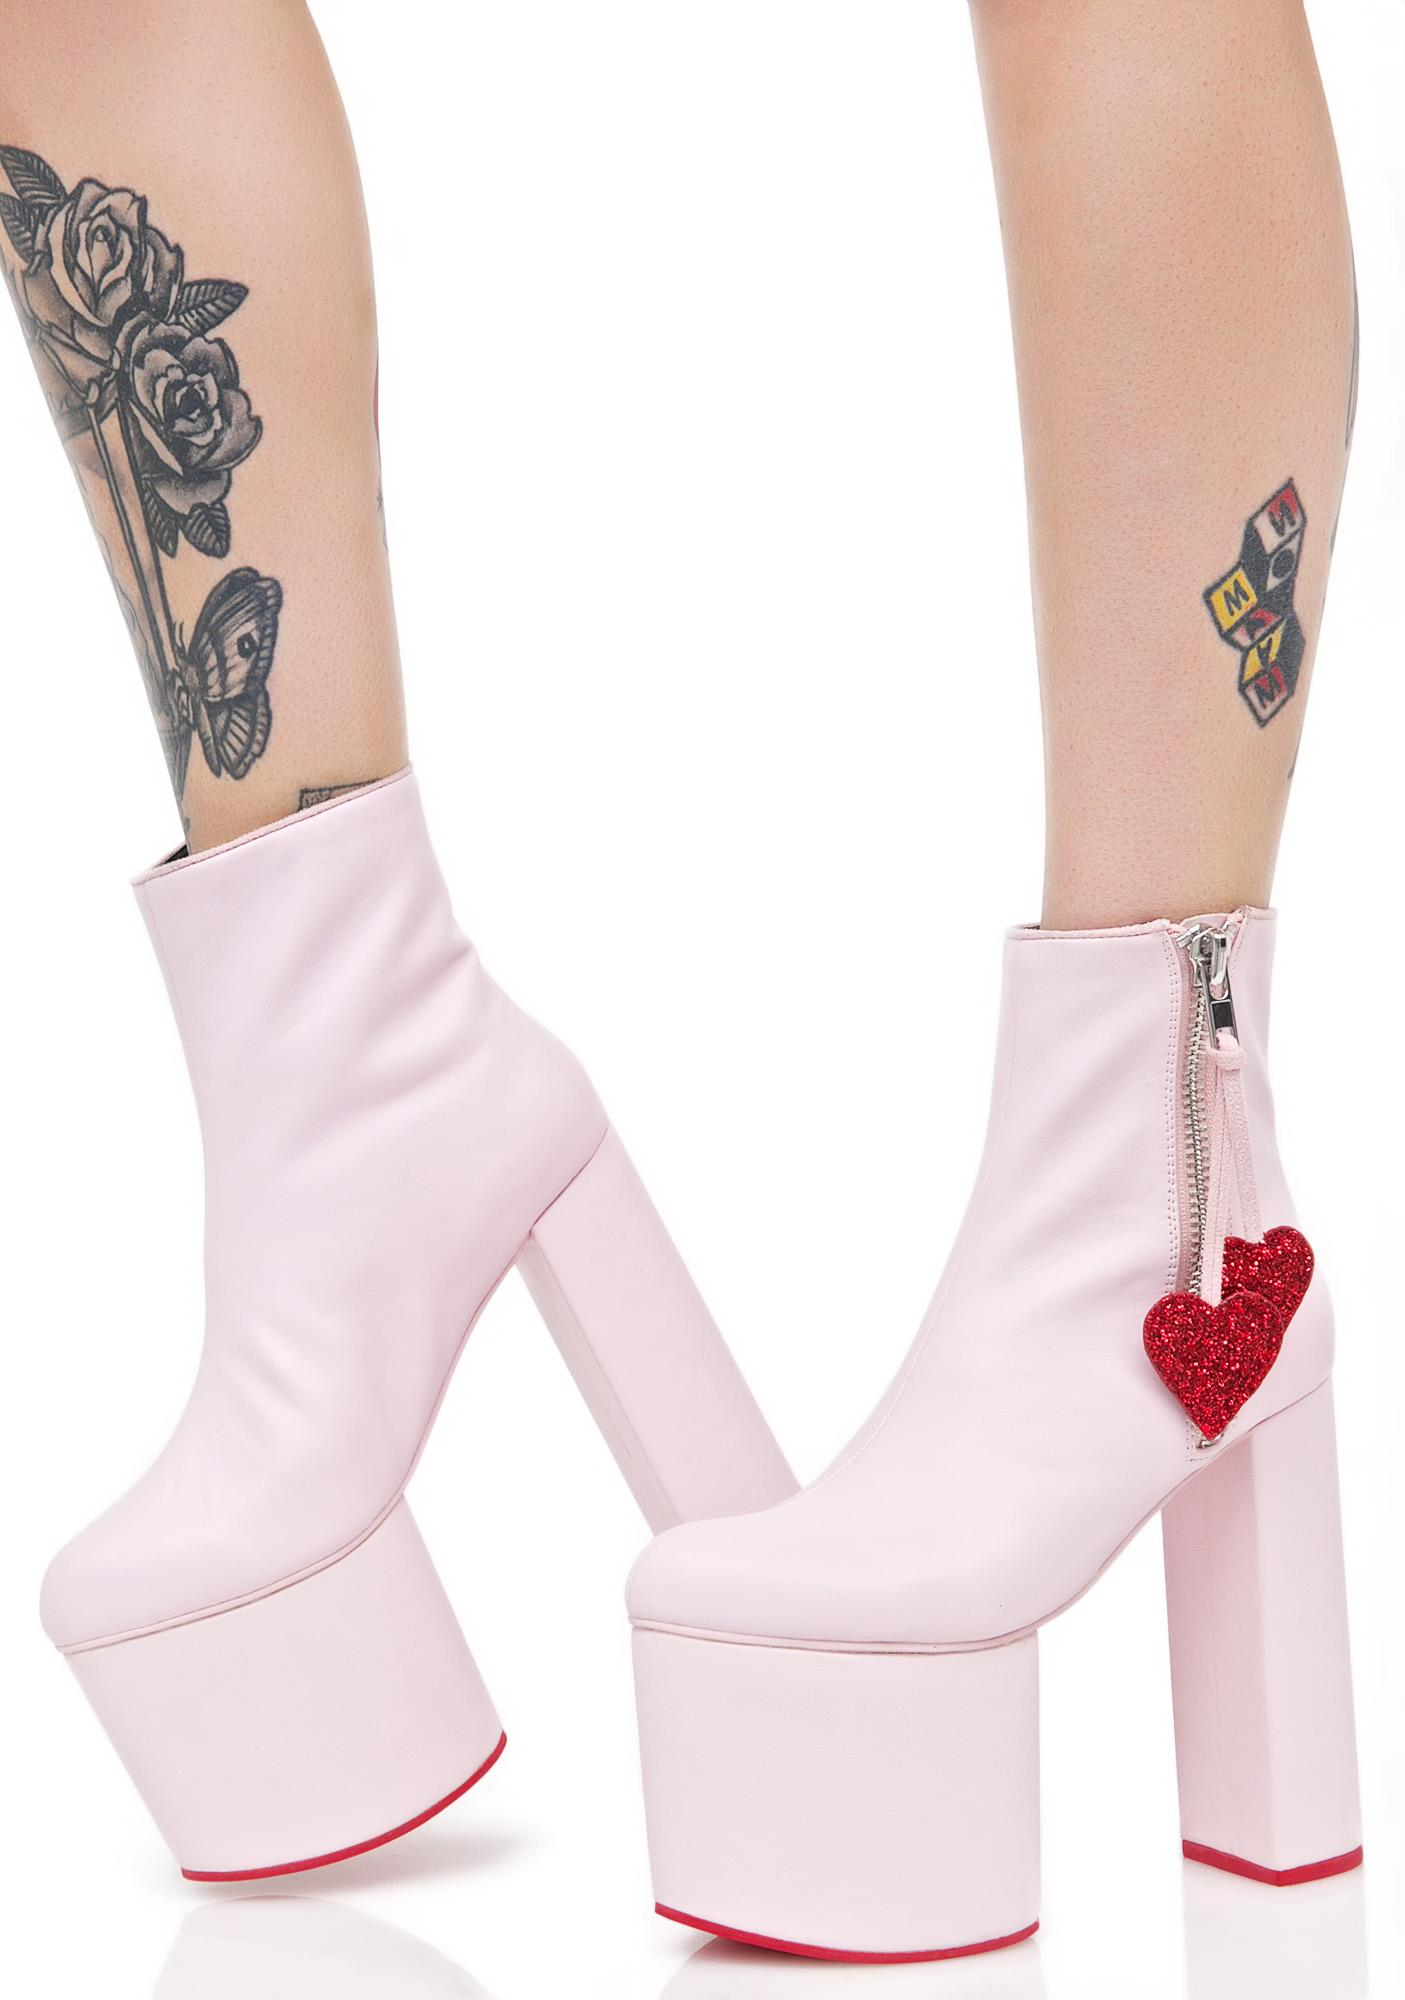 Sugar Thrillz Heartstomper Platform Boots